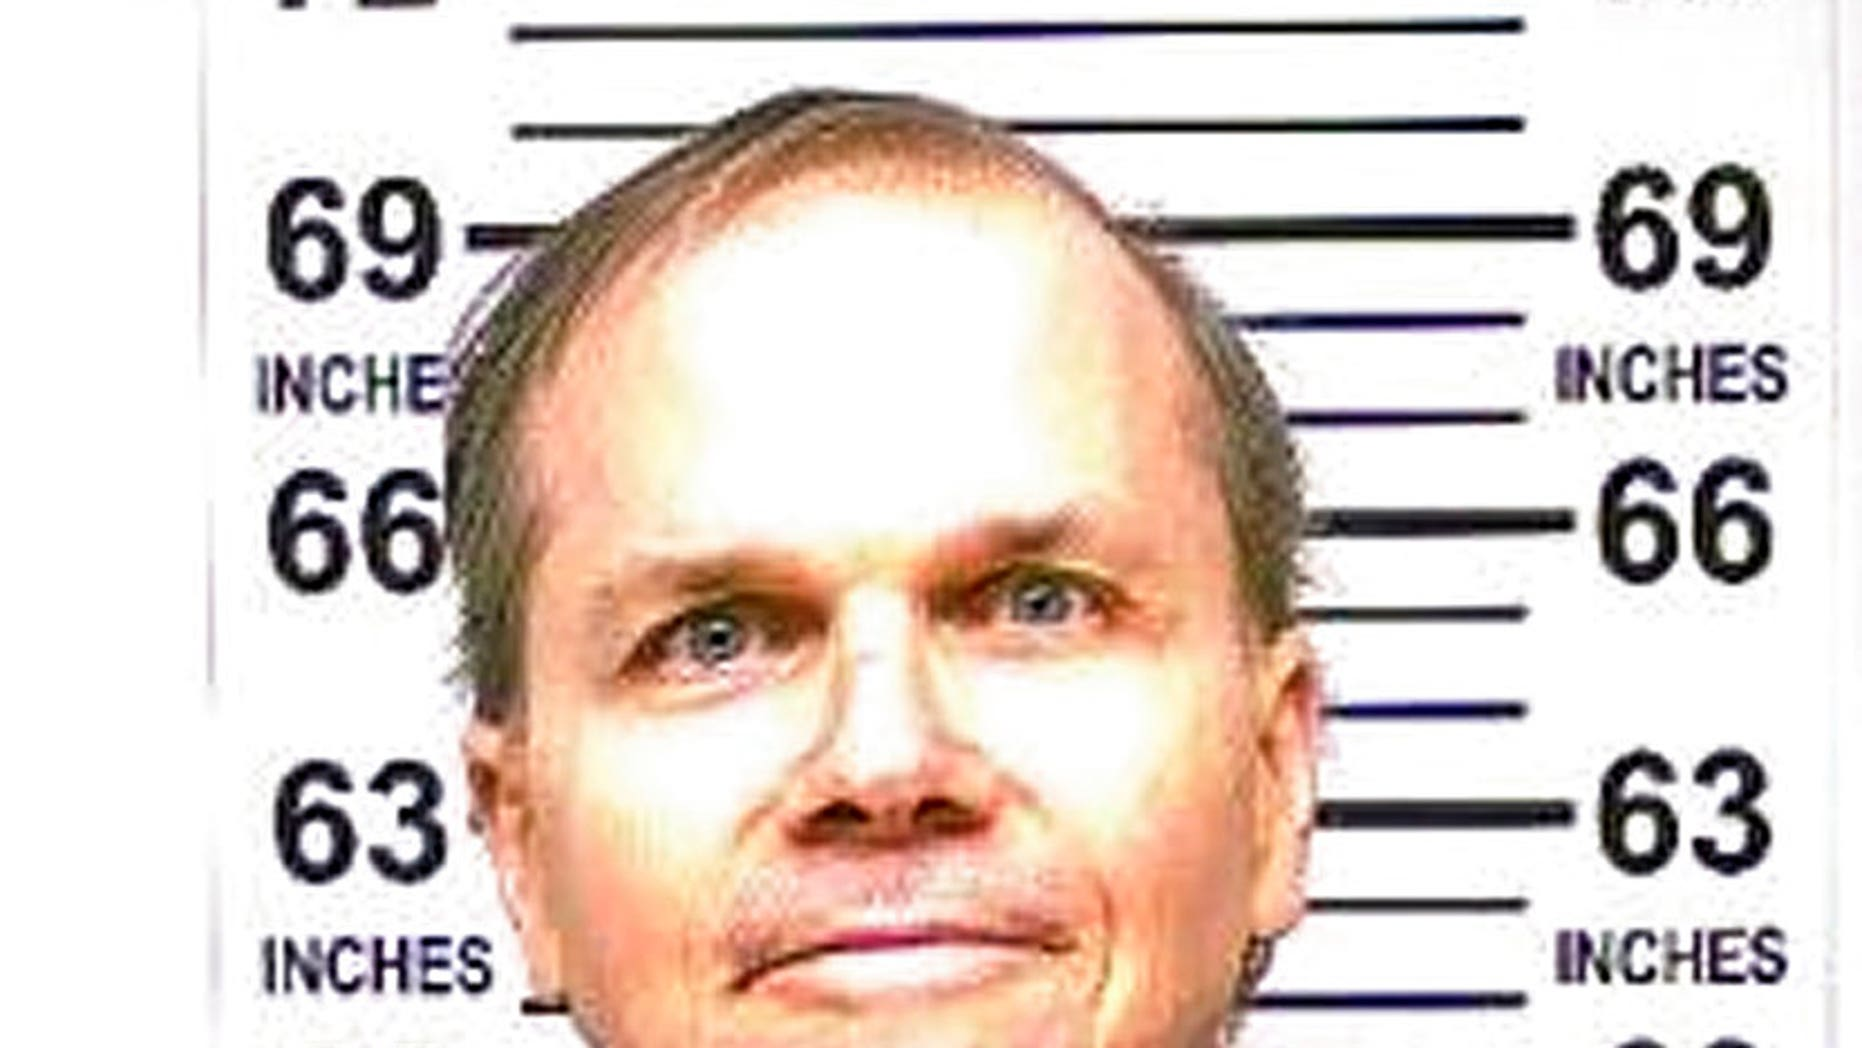 Mark David Chapman, the man who killed John Lennon in December 1980, was denied parole for the 10th time on Thursday.